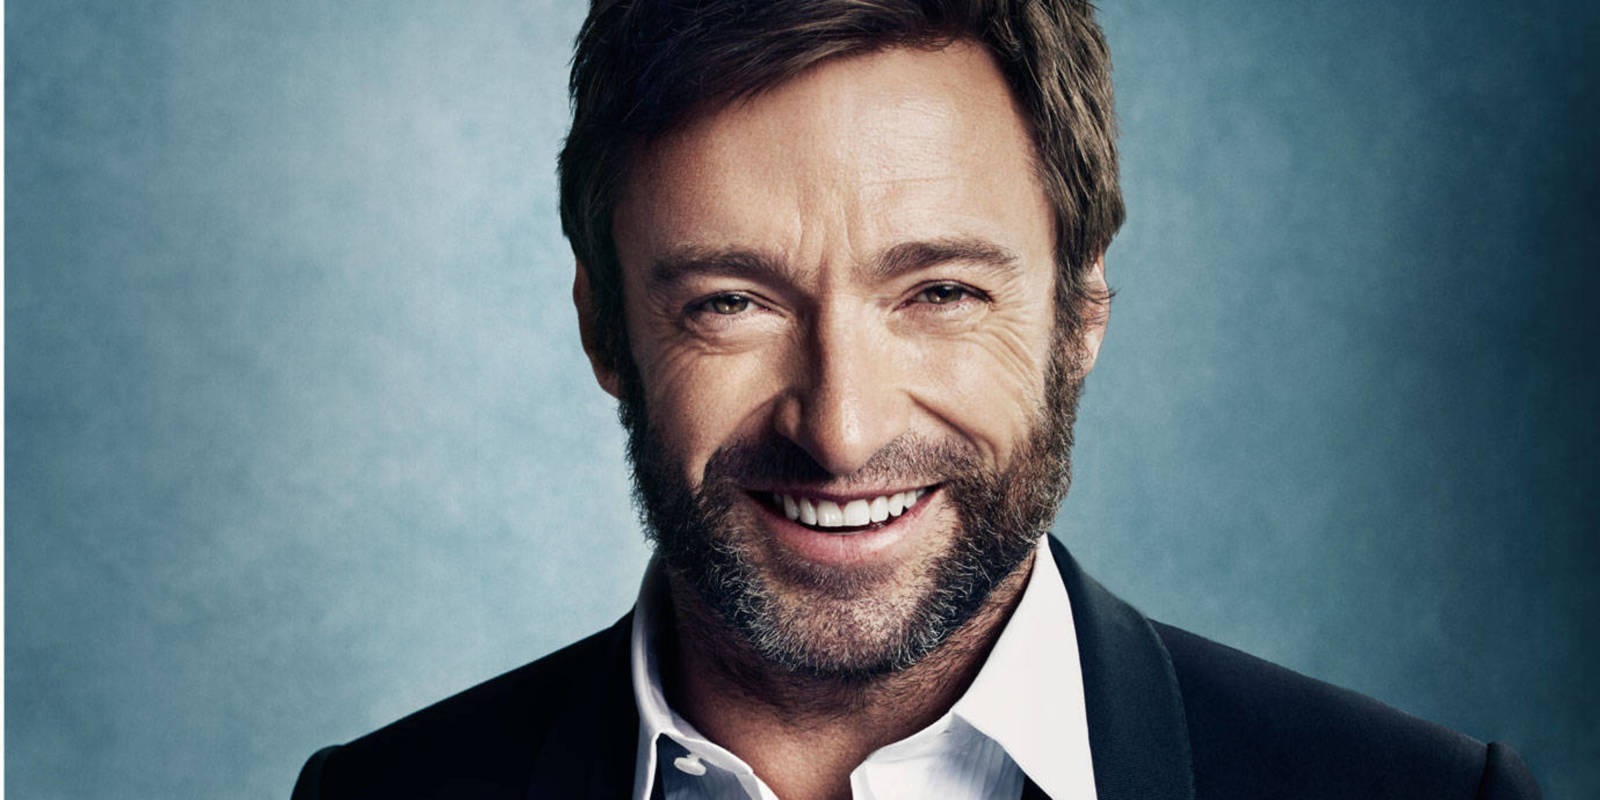 Hugh Michael Jackman, Hugh Jackman, Hugh Jackman face off, face off, profile, all you need to know